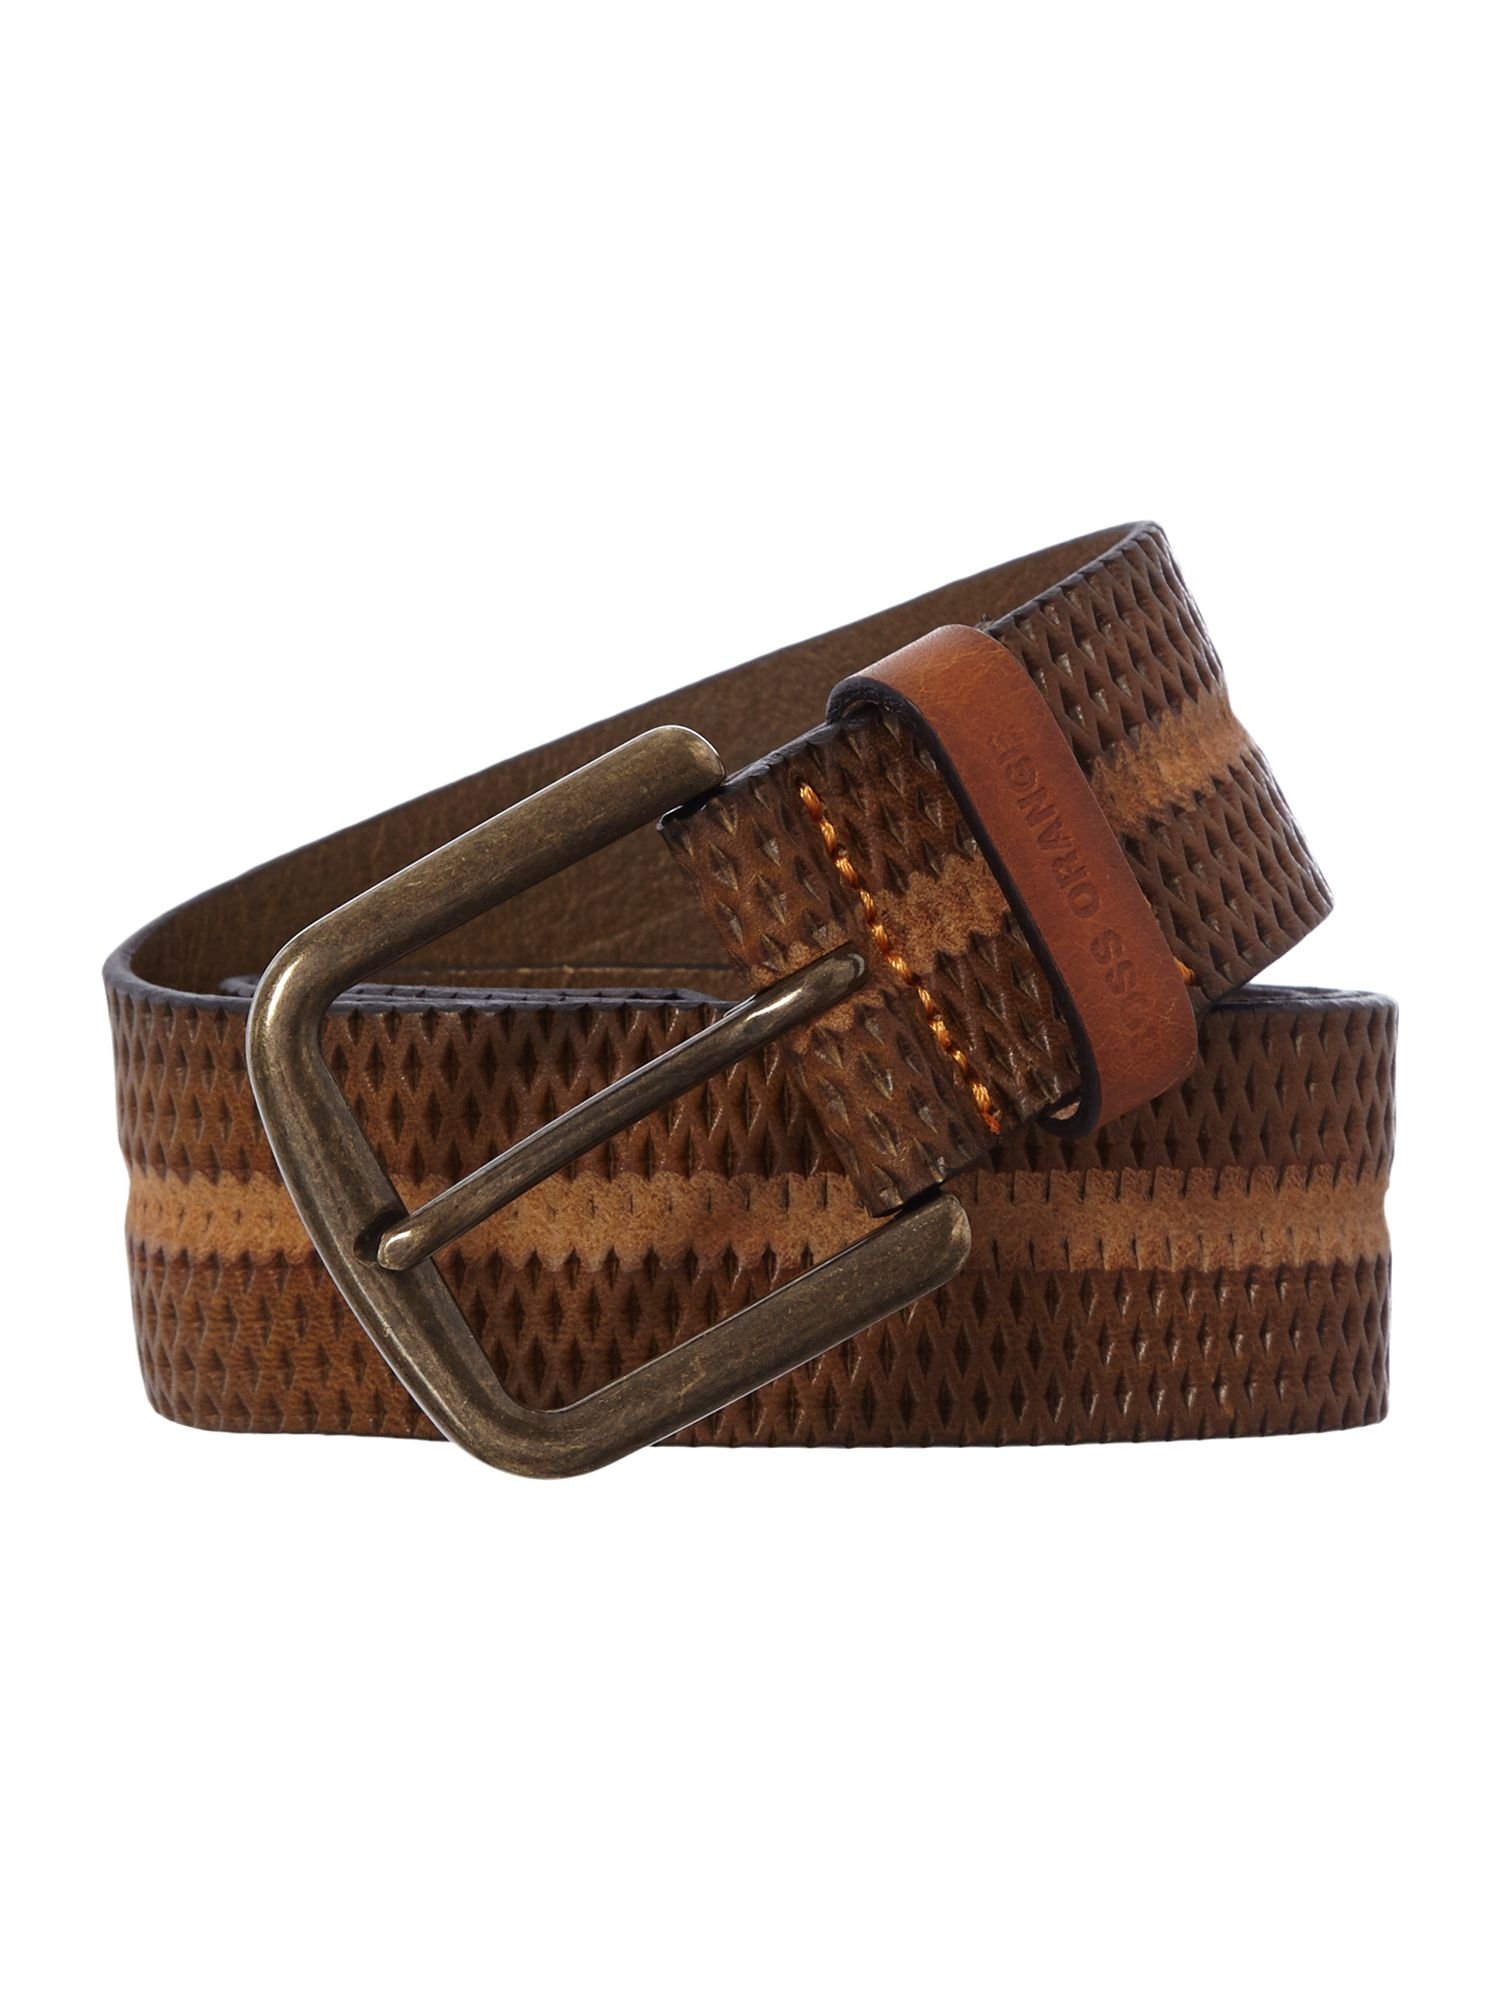 Jaconos logo belt